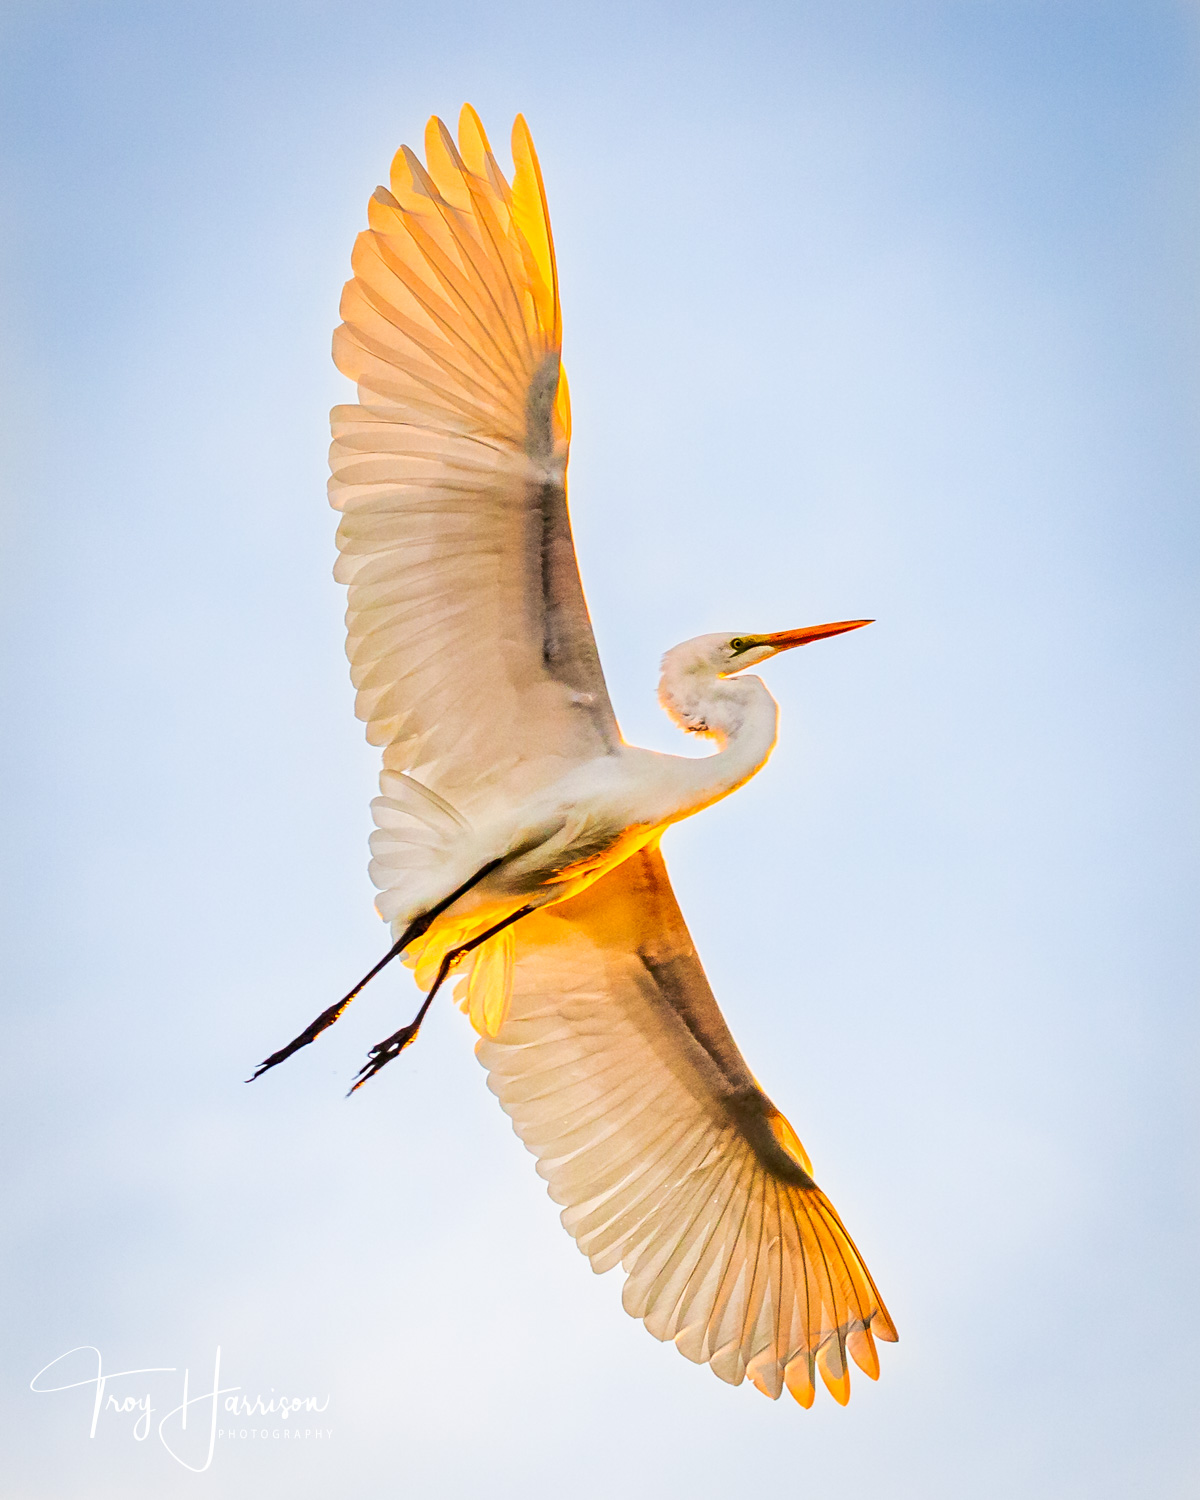 1 - Great Egret, Everglades, Nov. 2018, img 2523.jpg